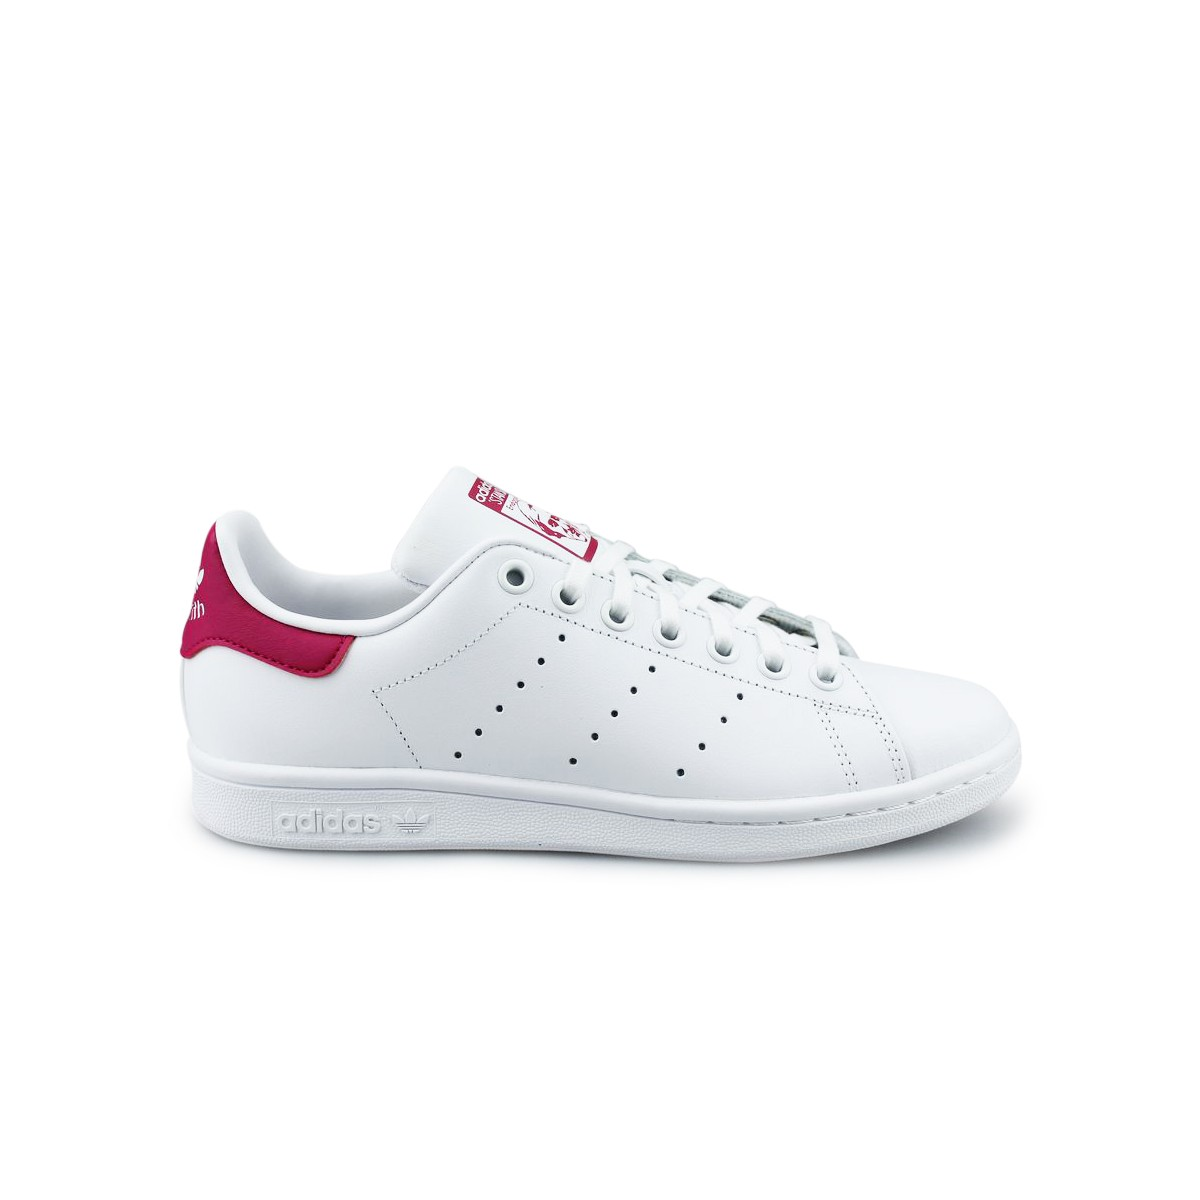 quality design ec8b1 0bfbe Adidas Originals Stan Smith J Blanc Rose B32703   Street Shoes Addict